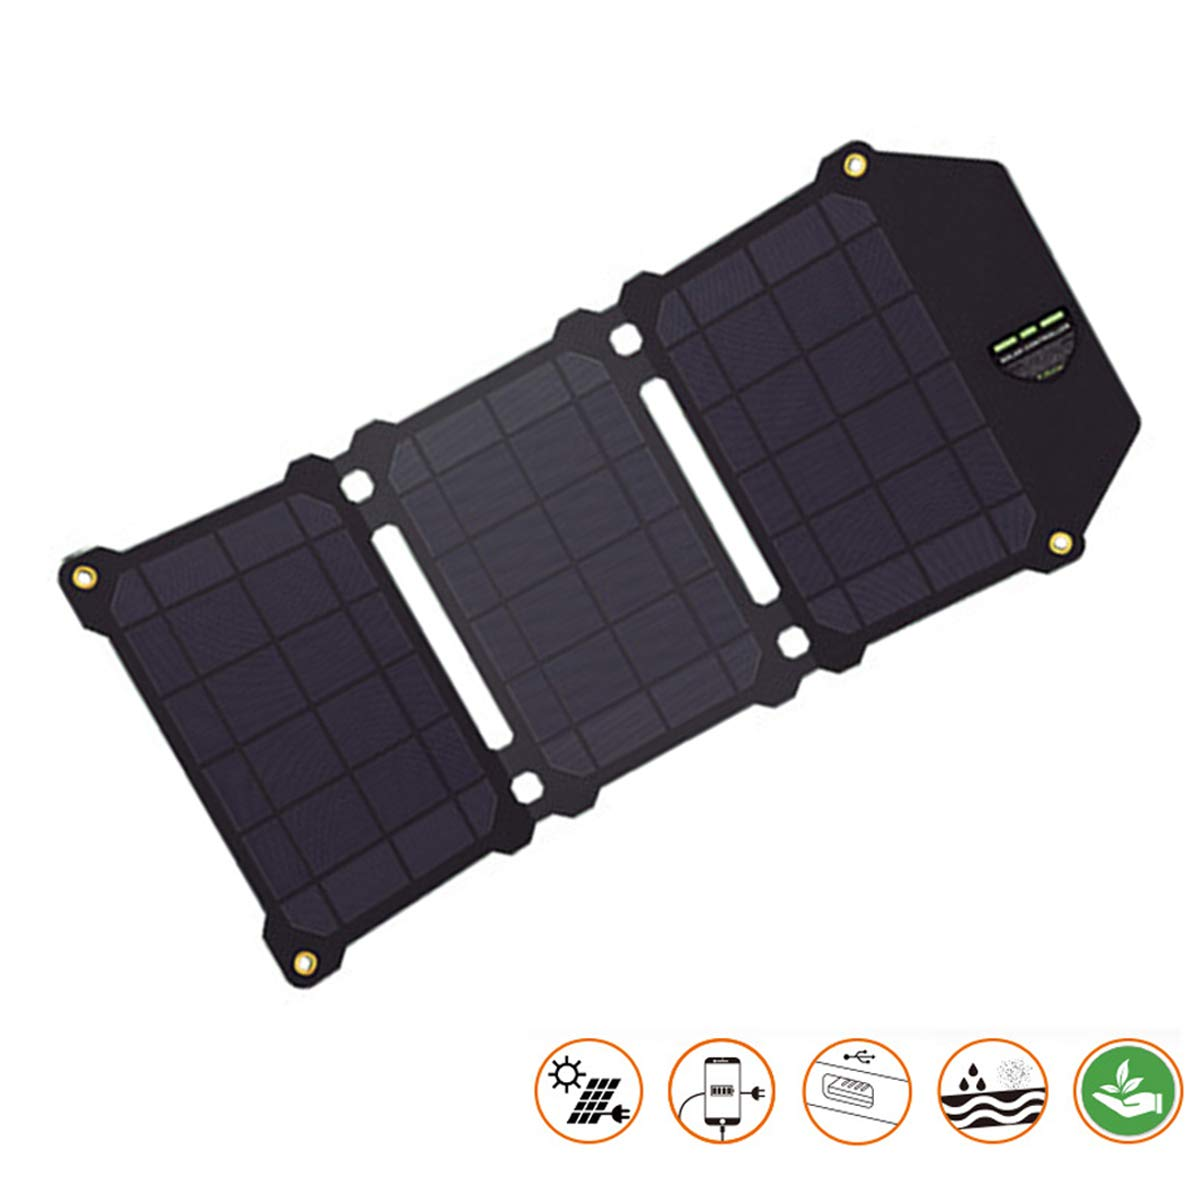 EFGS 3 Solar Panels Foldable Portable Solar Charger with waterproofand (21W 2-Port USB Solar Charger) for iPhone X/iPhone 8/8 Plus, Huawei, GoPro and More